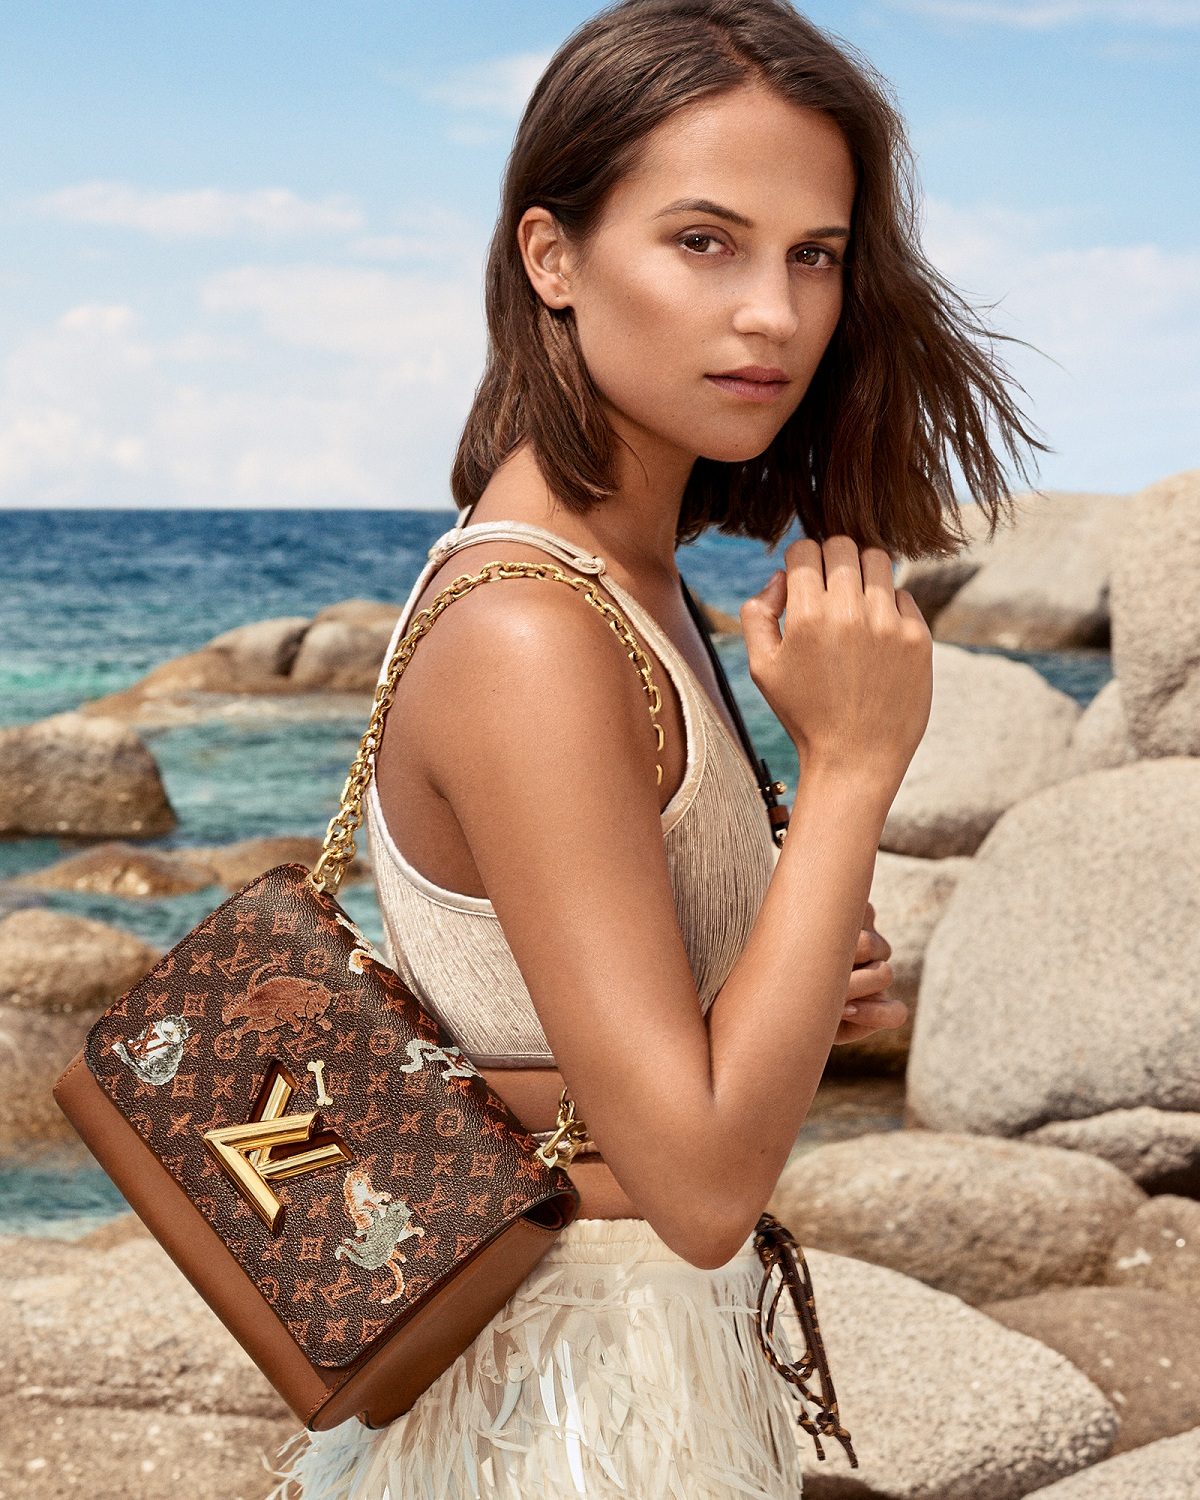 Louis Vuitton Cruise 2019 Alicia Vikander Fashionela